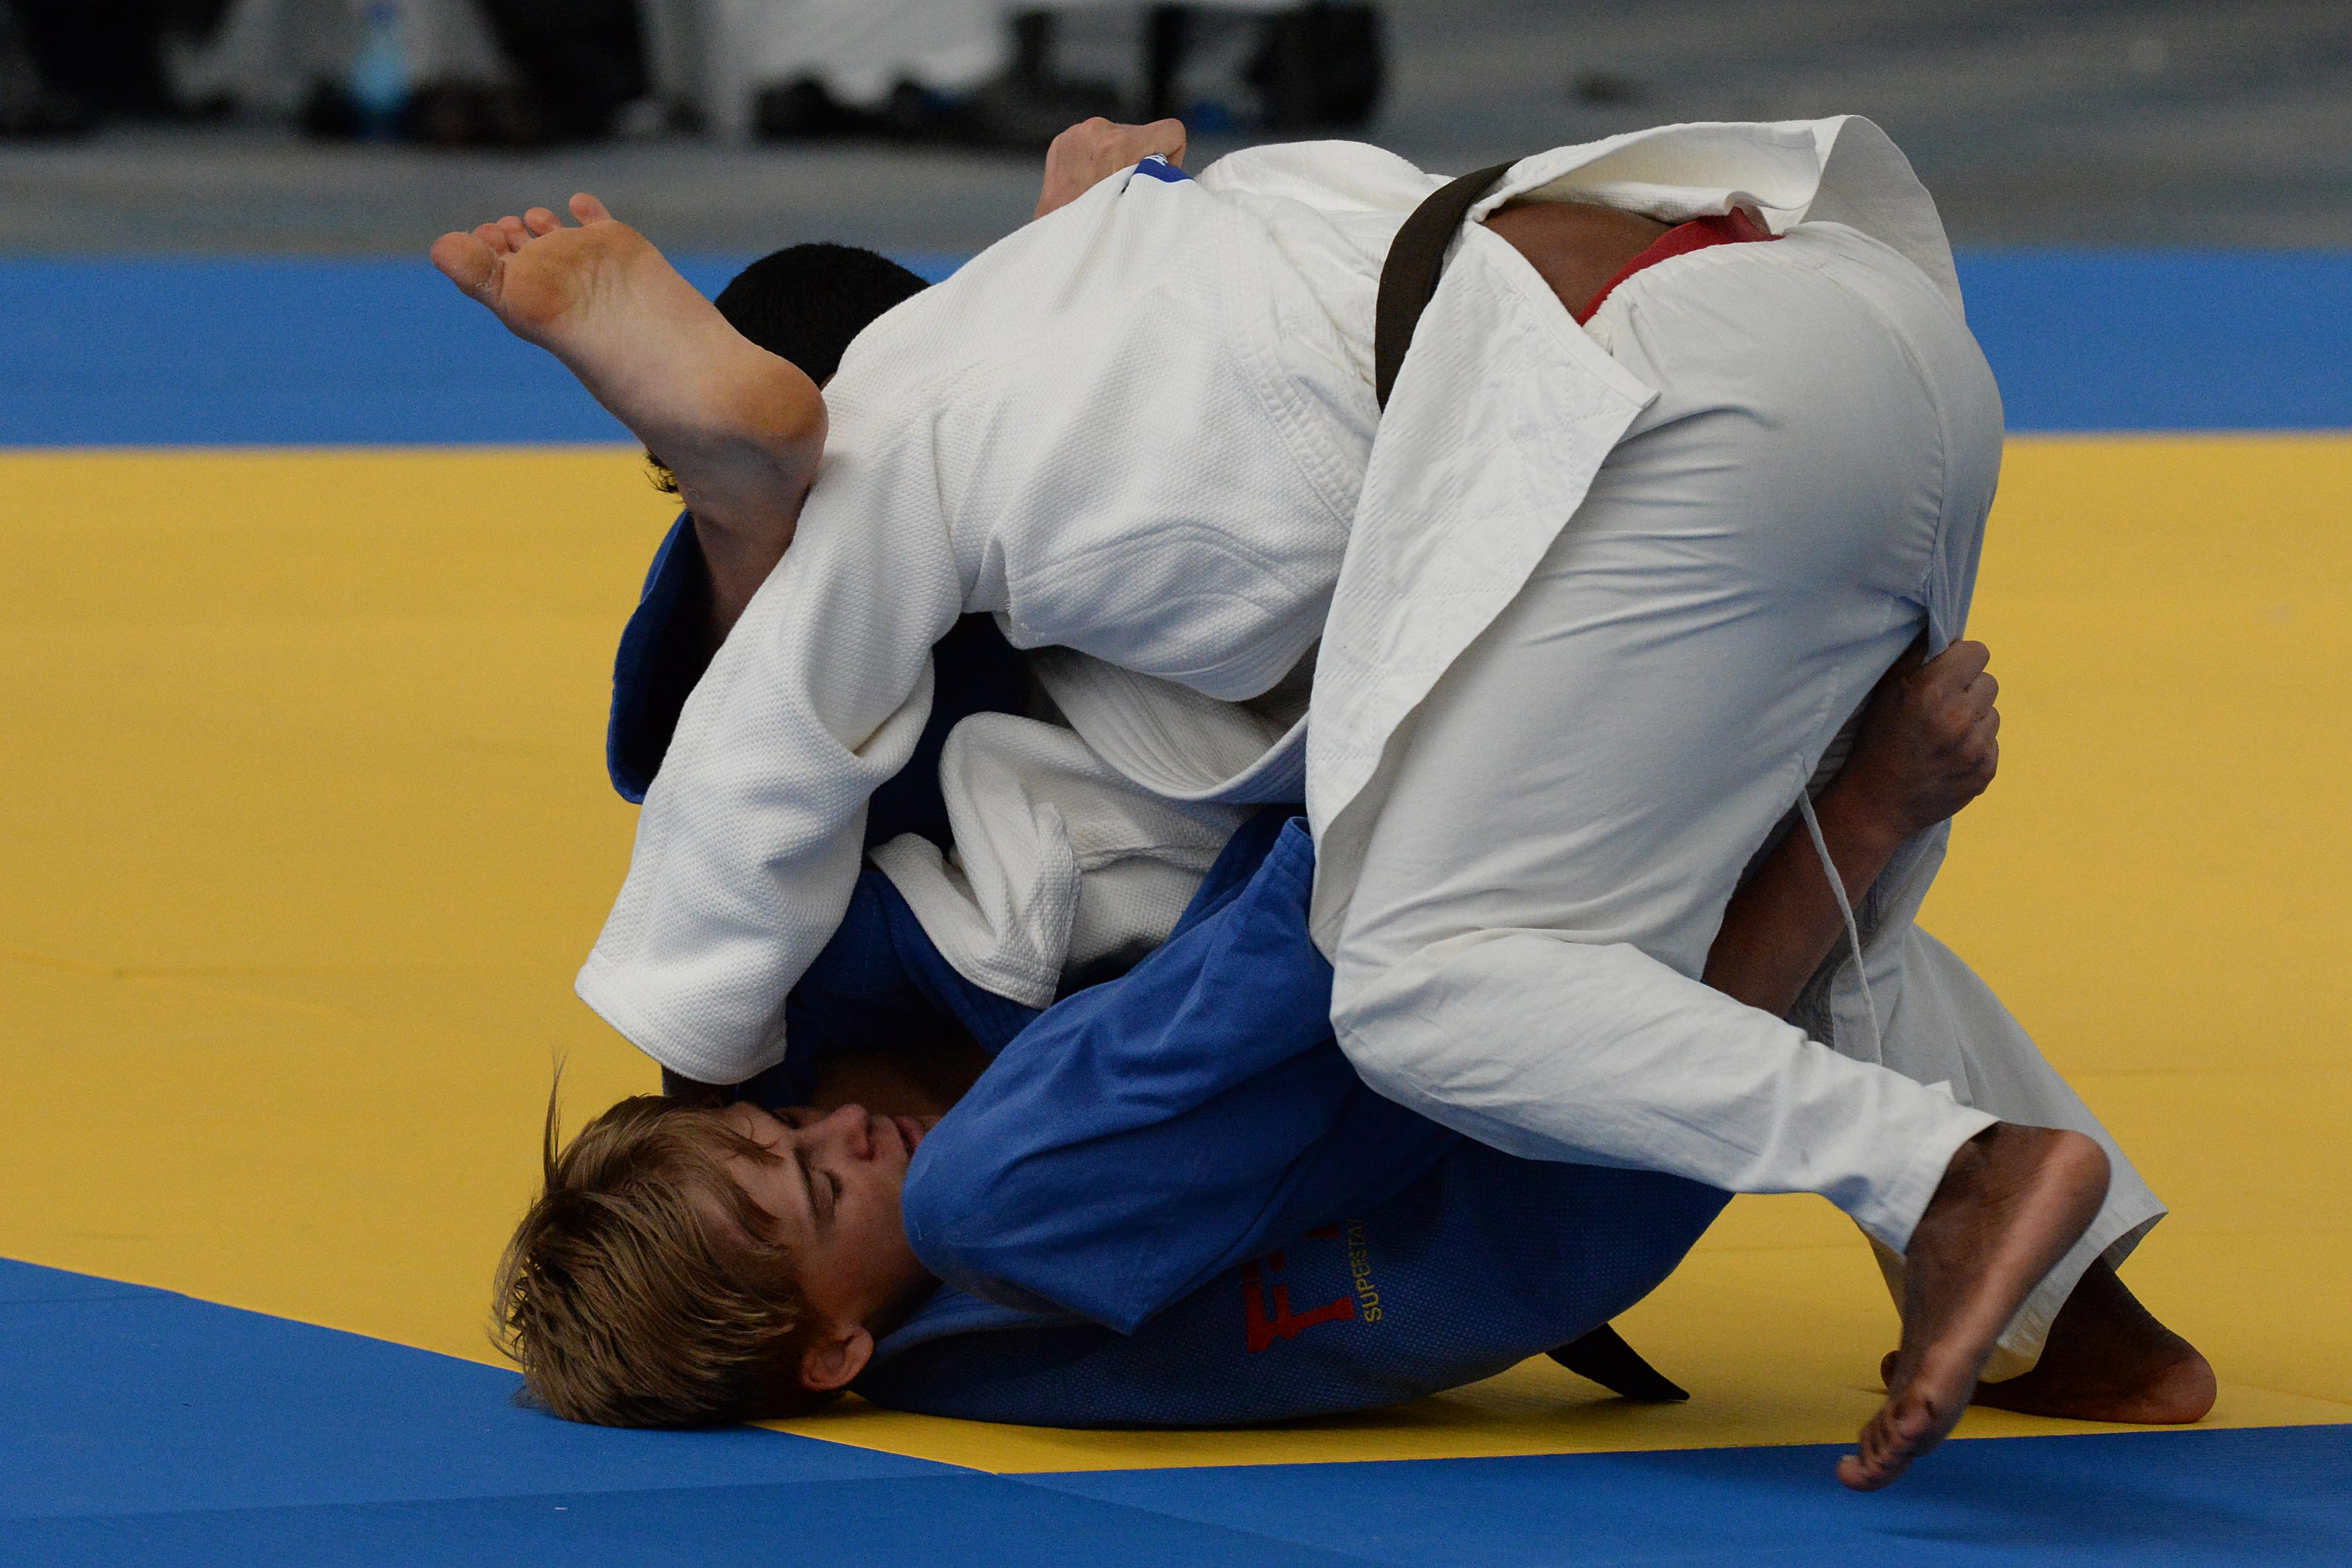 Young judoka players out to grab Region 5 medals